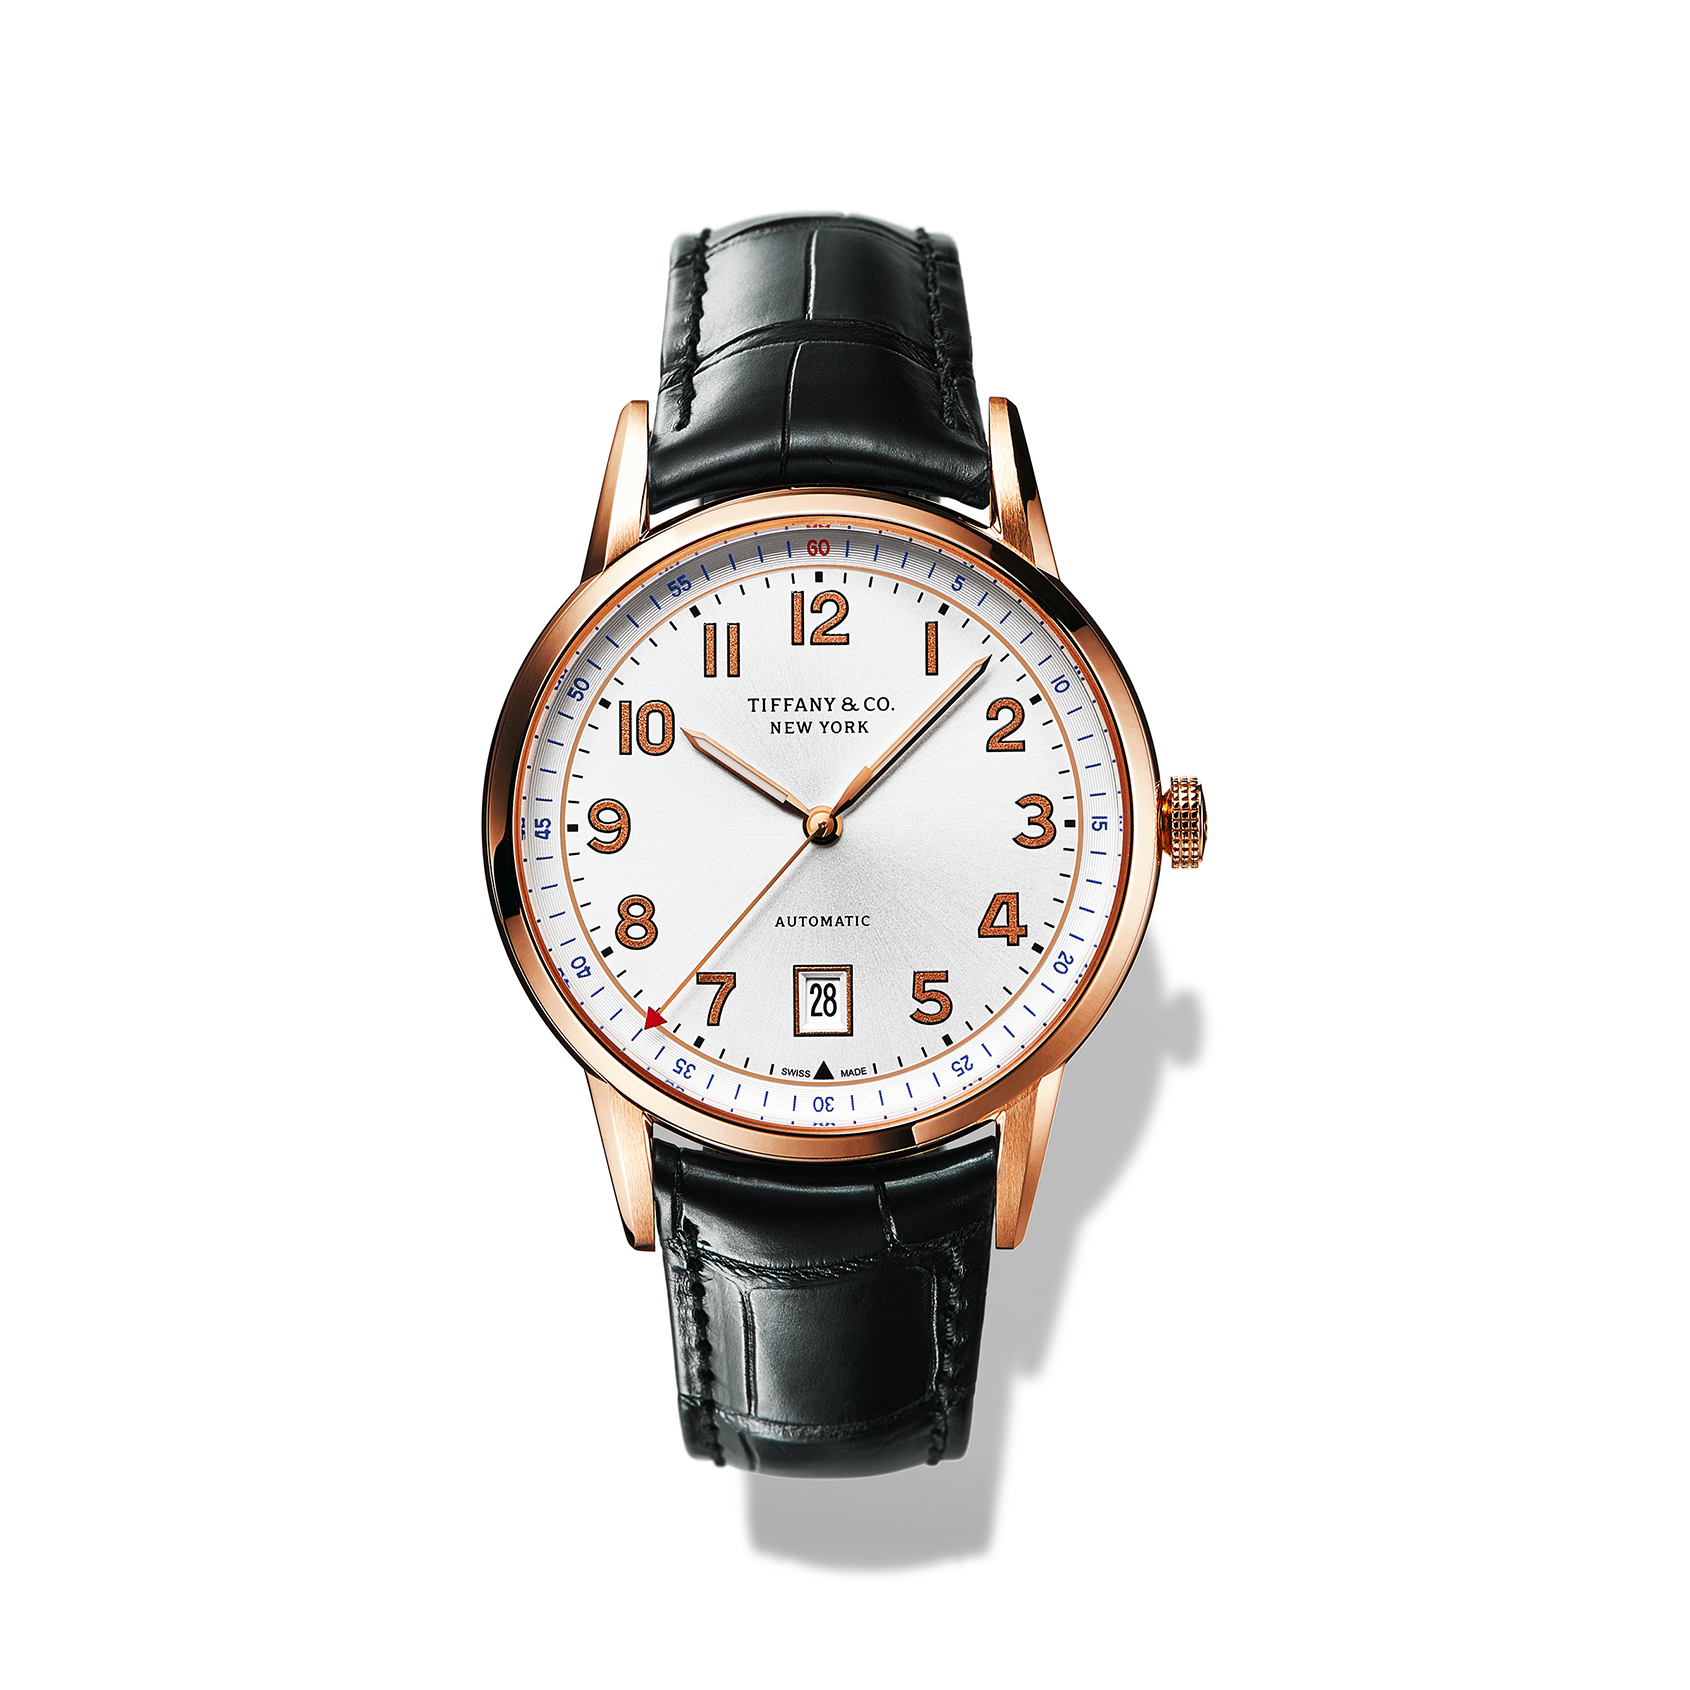 Tiffany & Co. Milestone Yellow-gold Calendar Watch